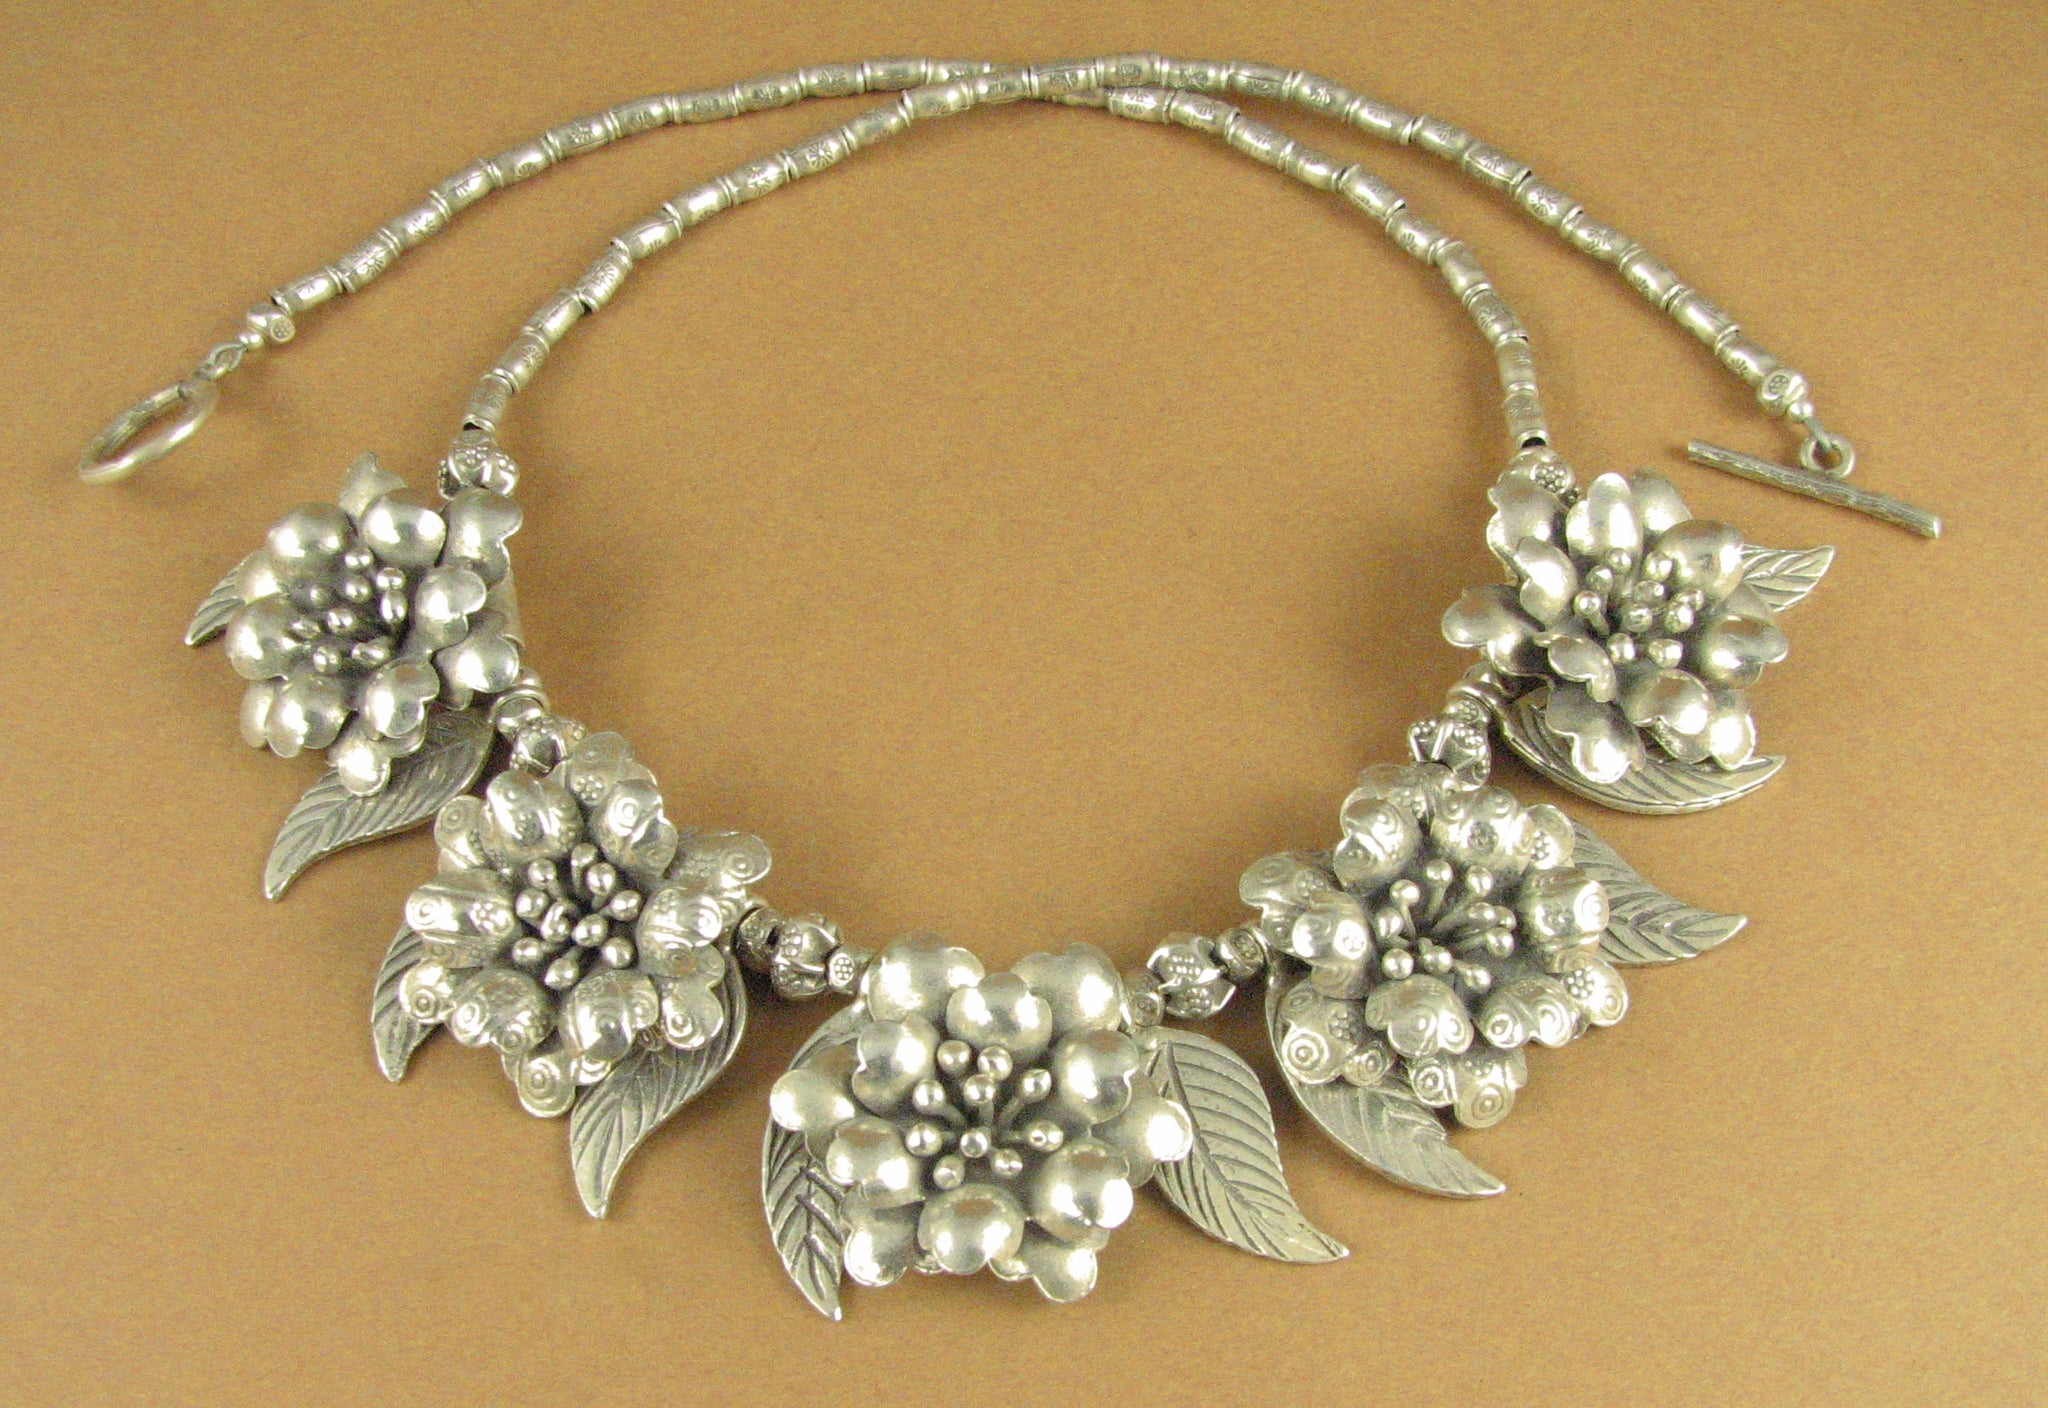 Flower and leaf statement necklace. 5 flowers. Solid fine silver, 925. Handmade